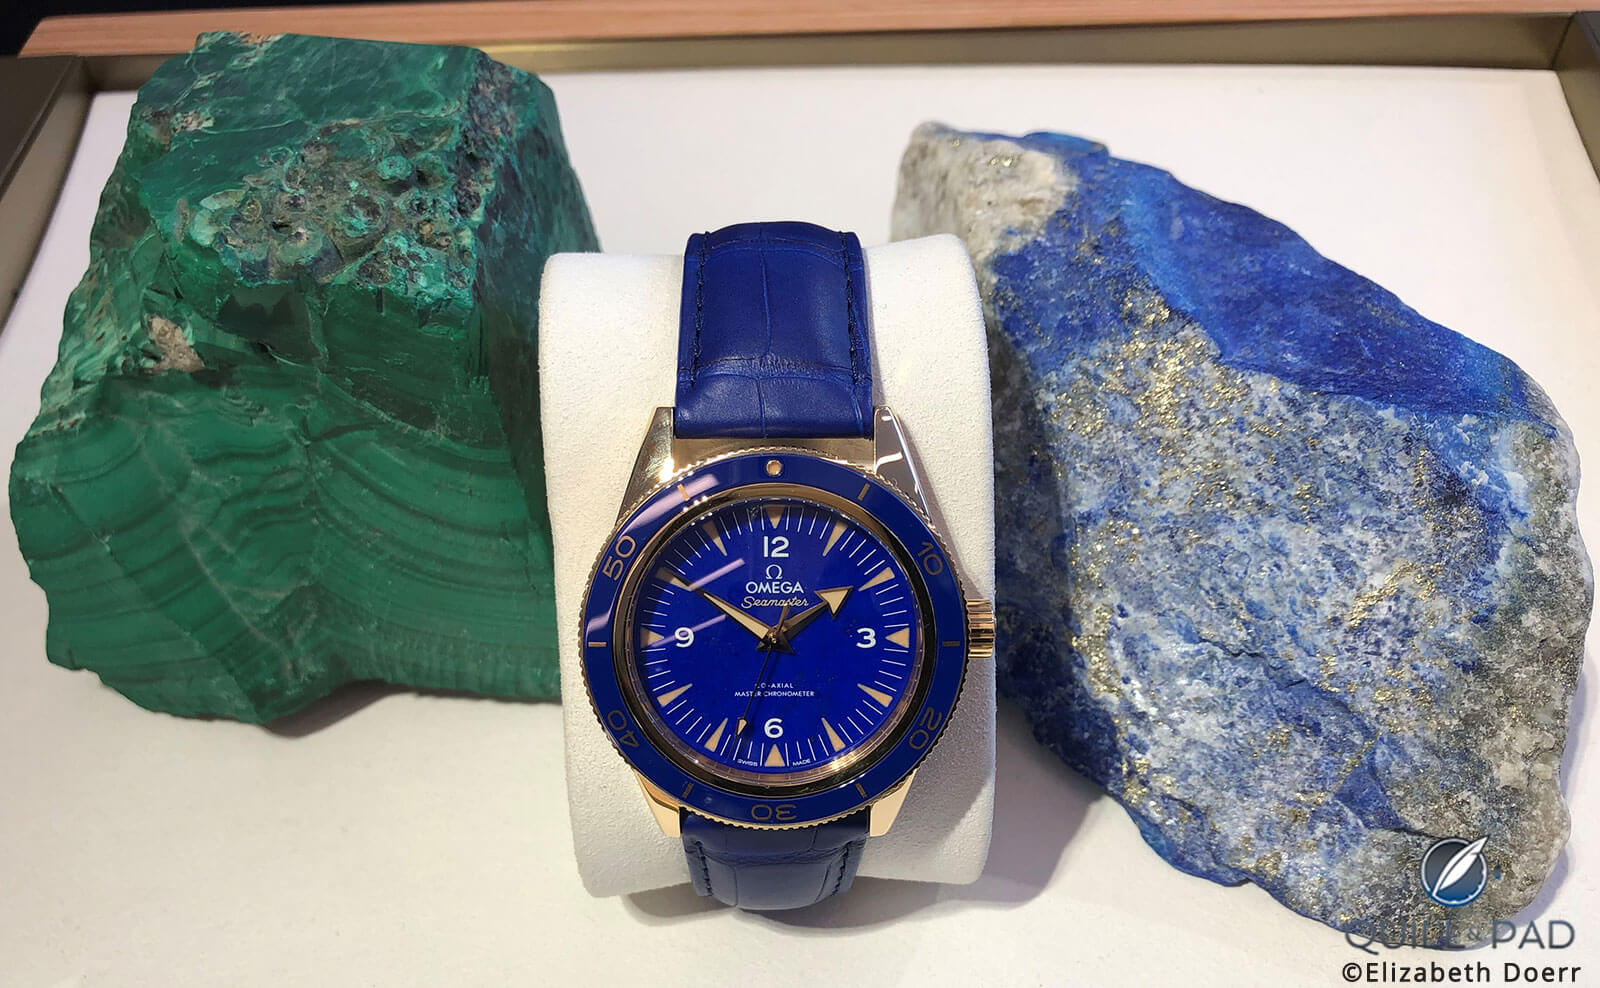 A 2019 Omega Seamaster between malachite (left) and lapis lazuli